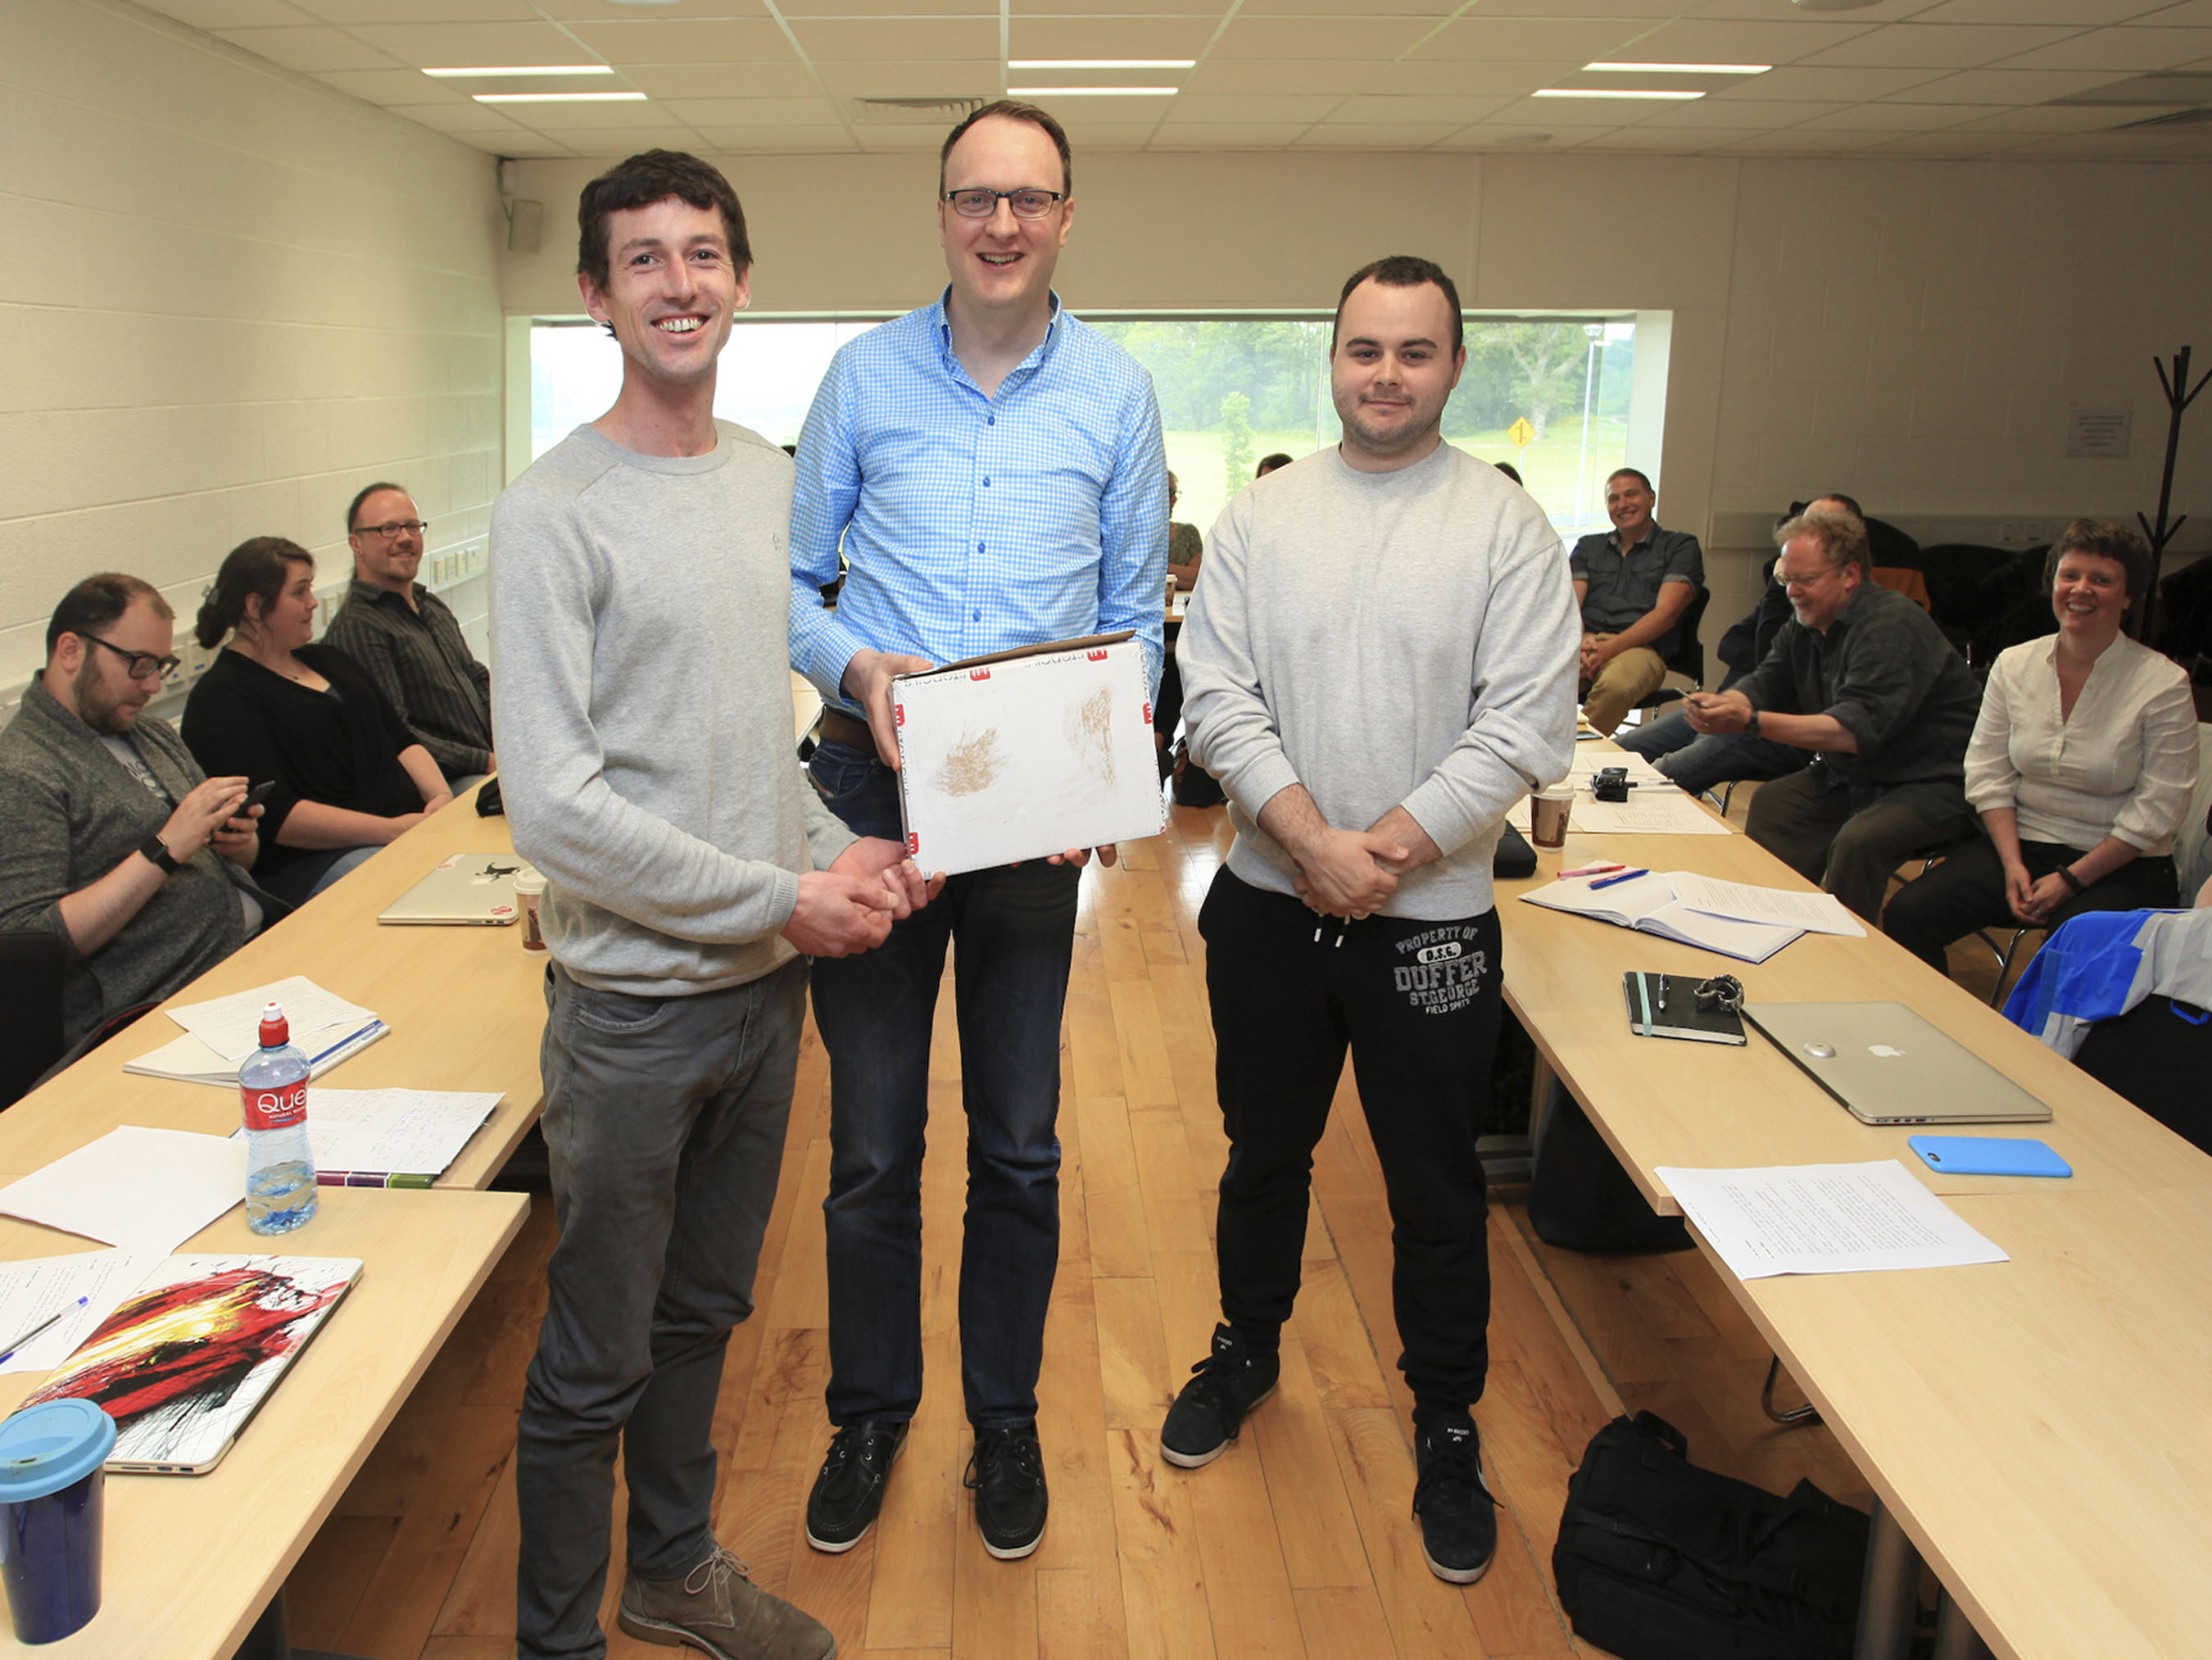 John Julian, Senior Visual Designer at SAP (middle) awarding prize for best project presentation to Visual Communications Students Jim O'Brien (left) and Adam Doyle (right).